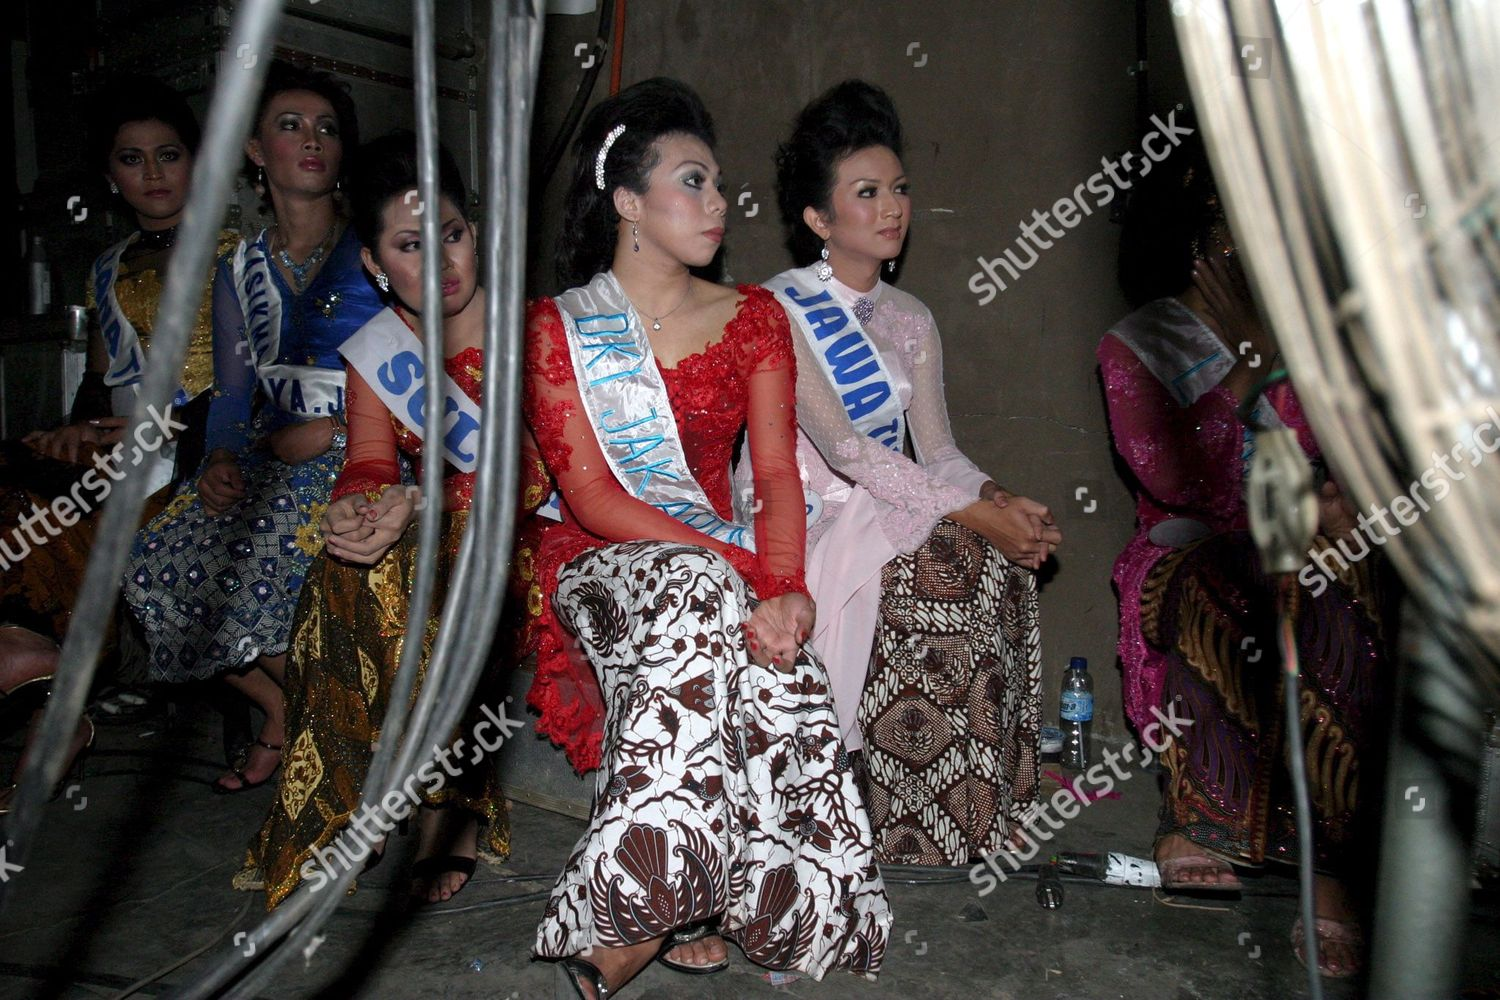 Indonesia Transsexual Beauty Pageant - Jun 2006